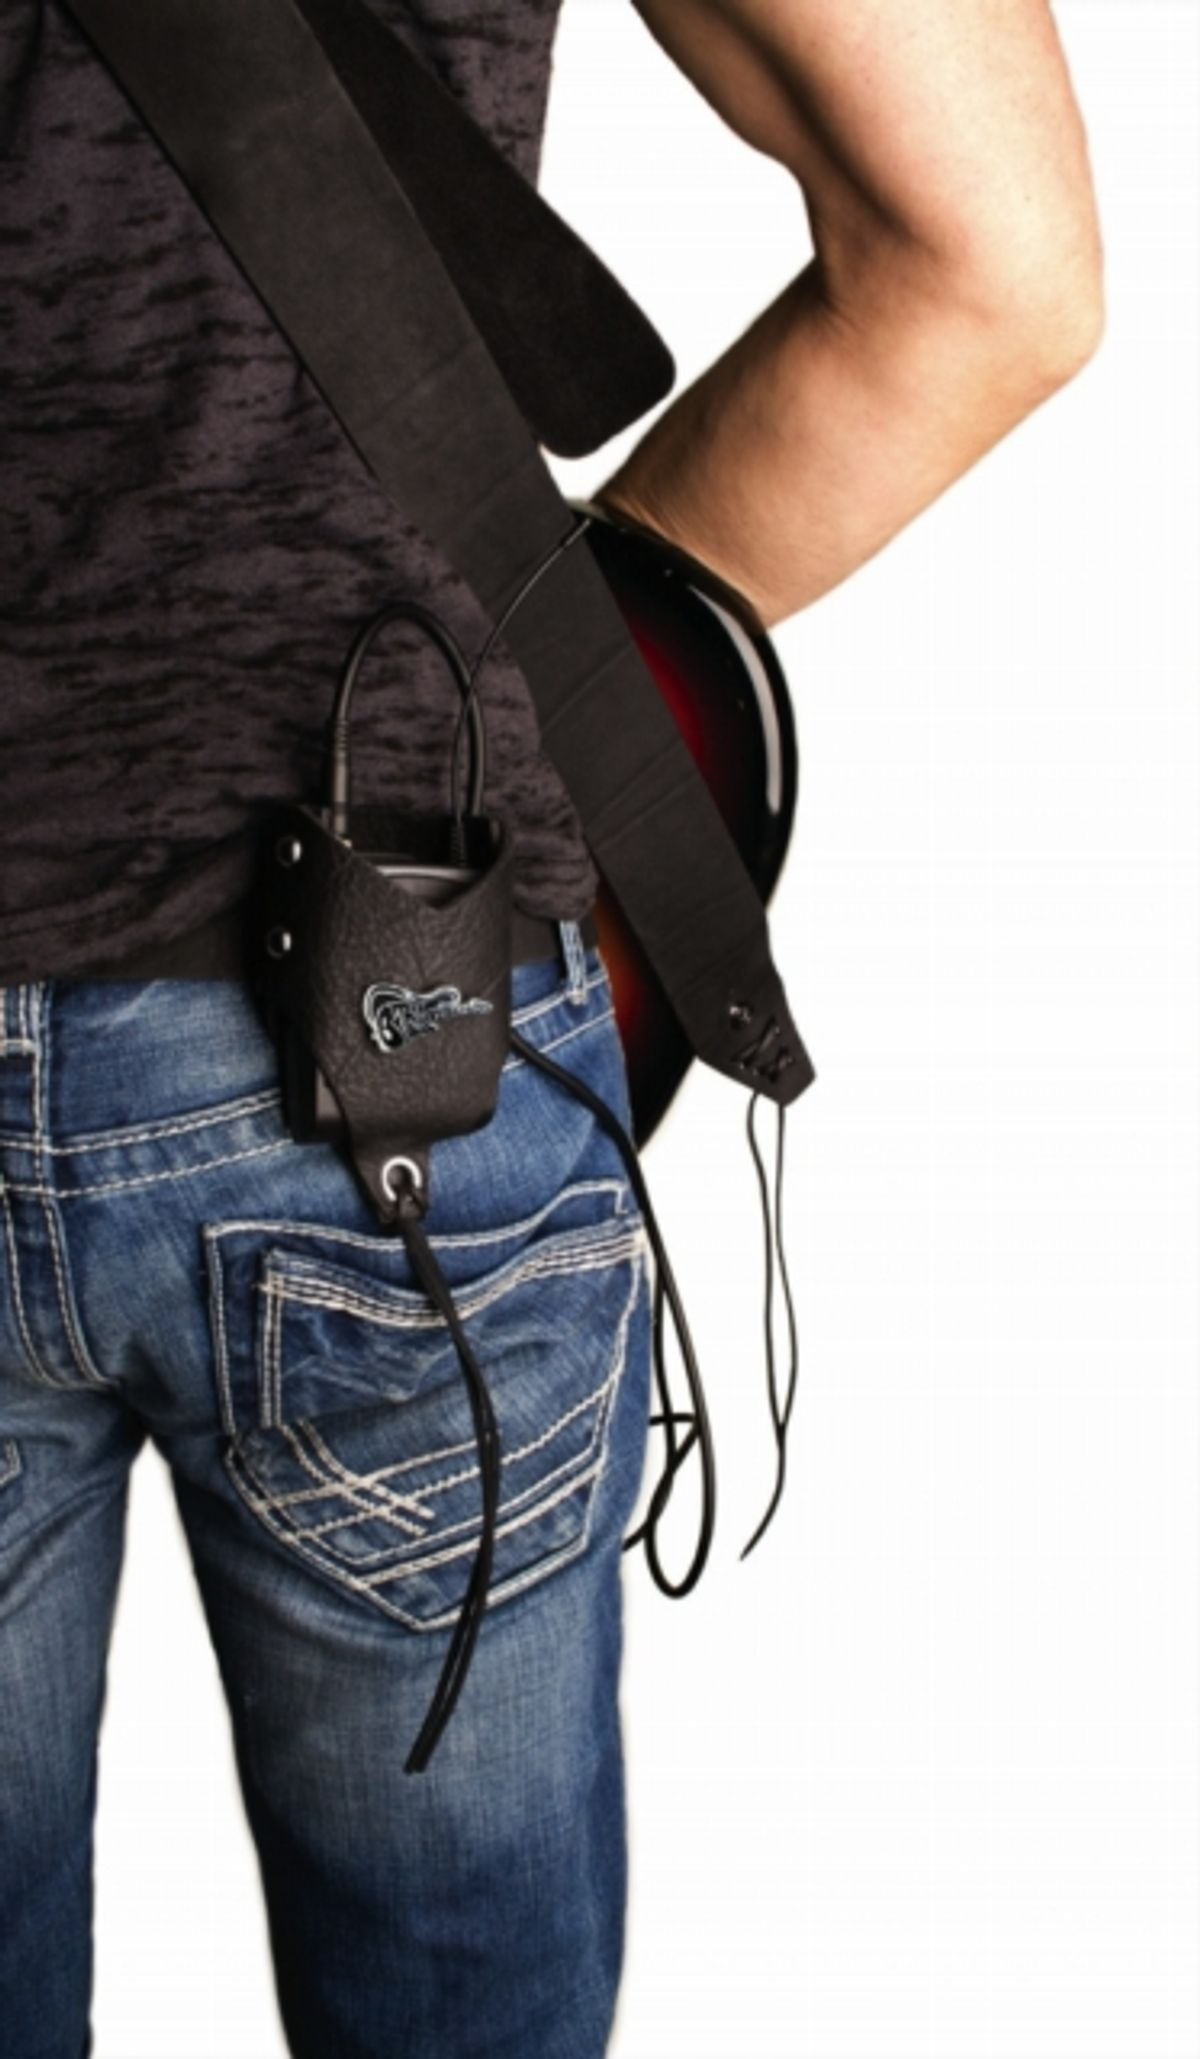 Bitchstraps Announce New Wireless Holster